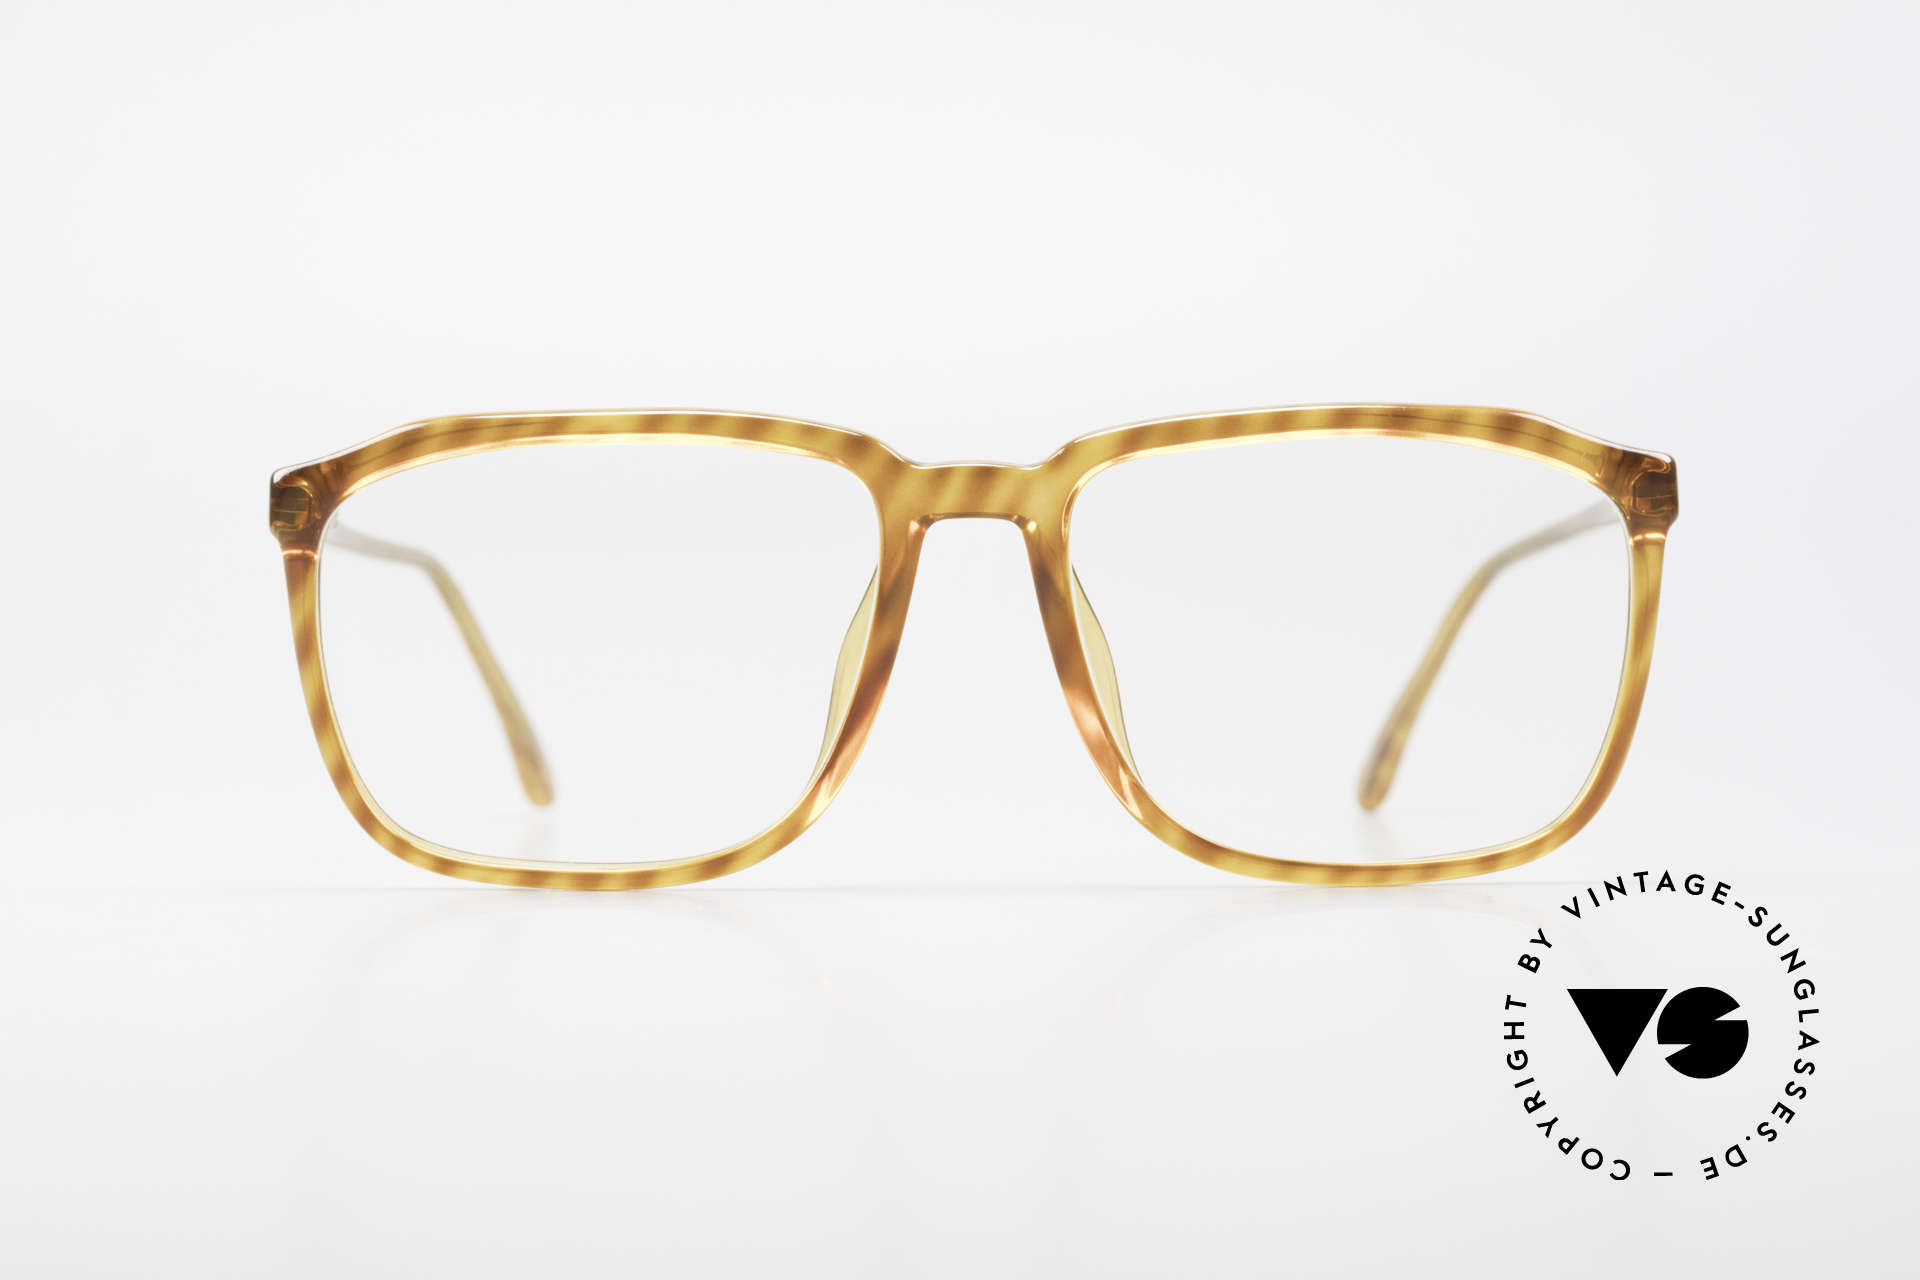 Dunhill 6133 Vintage Optyl Eyeglasses, everlasting OPTYL frame for a timeless TOP-quality, Made for Men